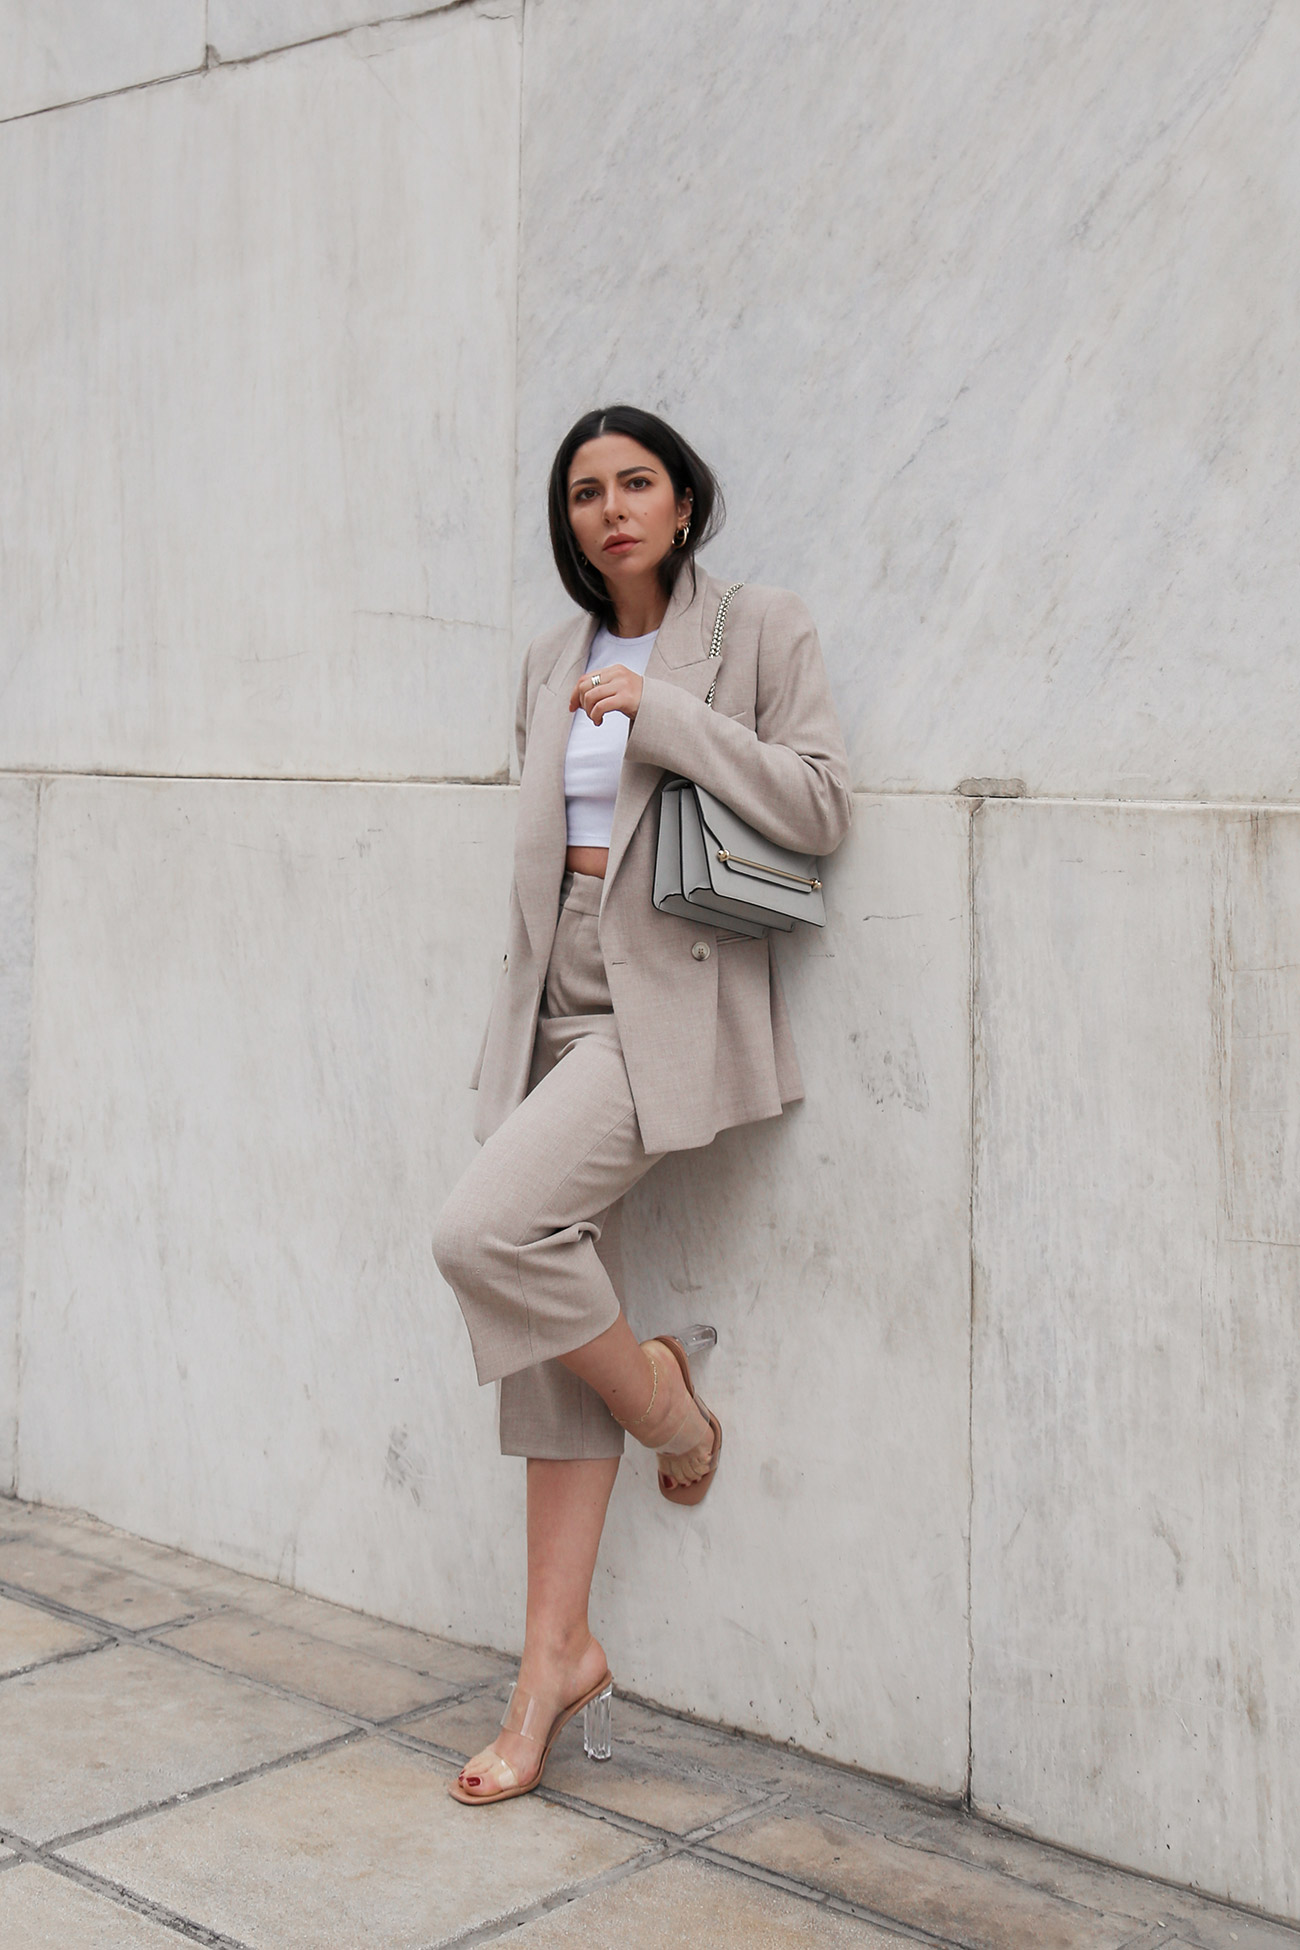 Bermuda suit trend Women's fashion spring summer 2020